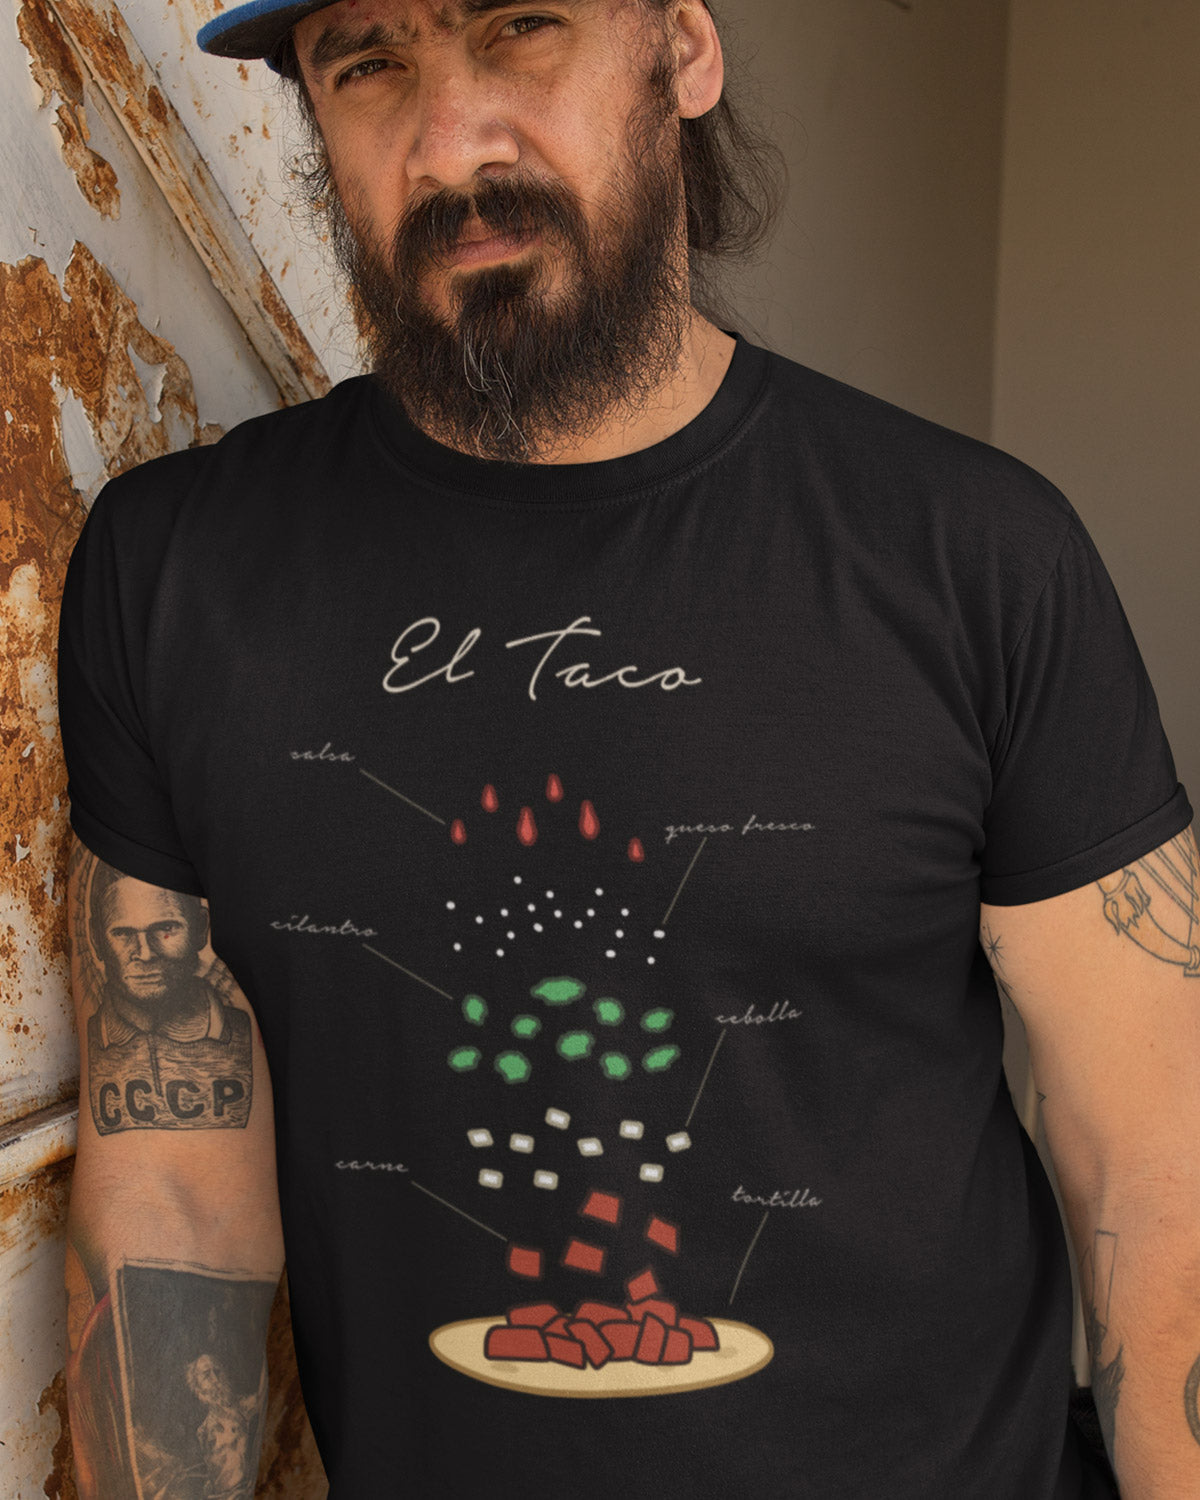 El Taco Elements Shirt on model - Taco Gear